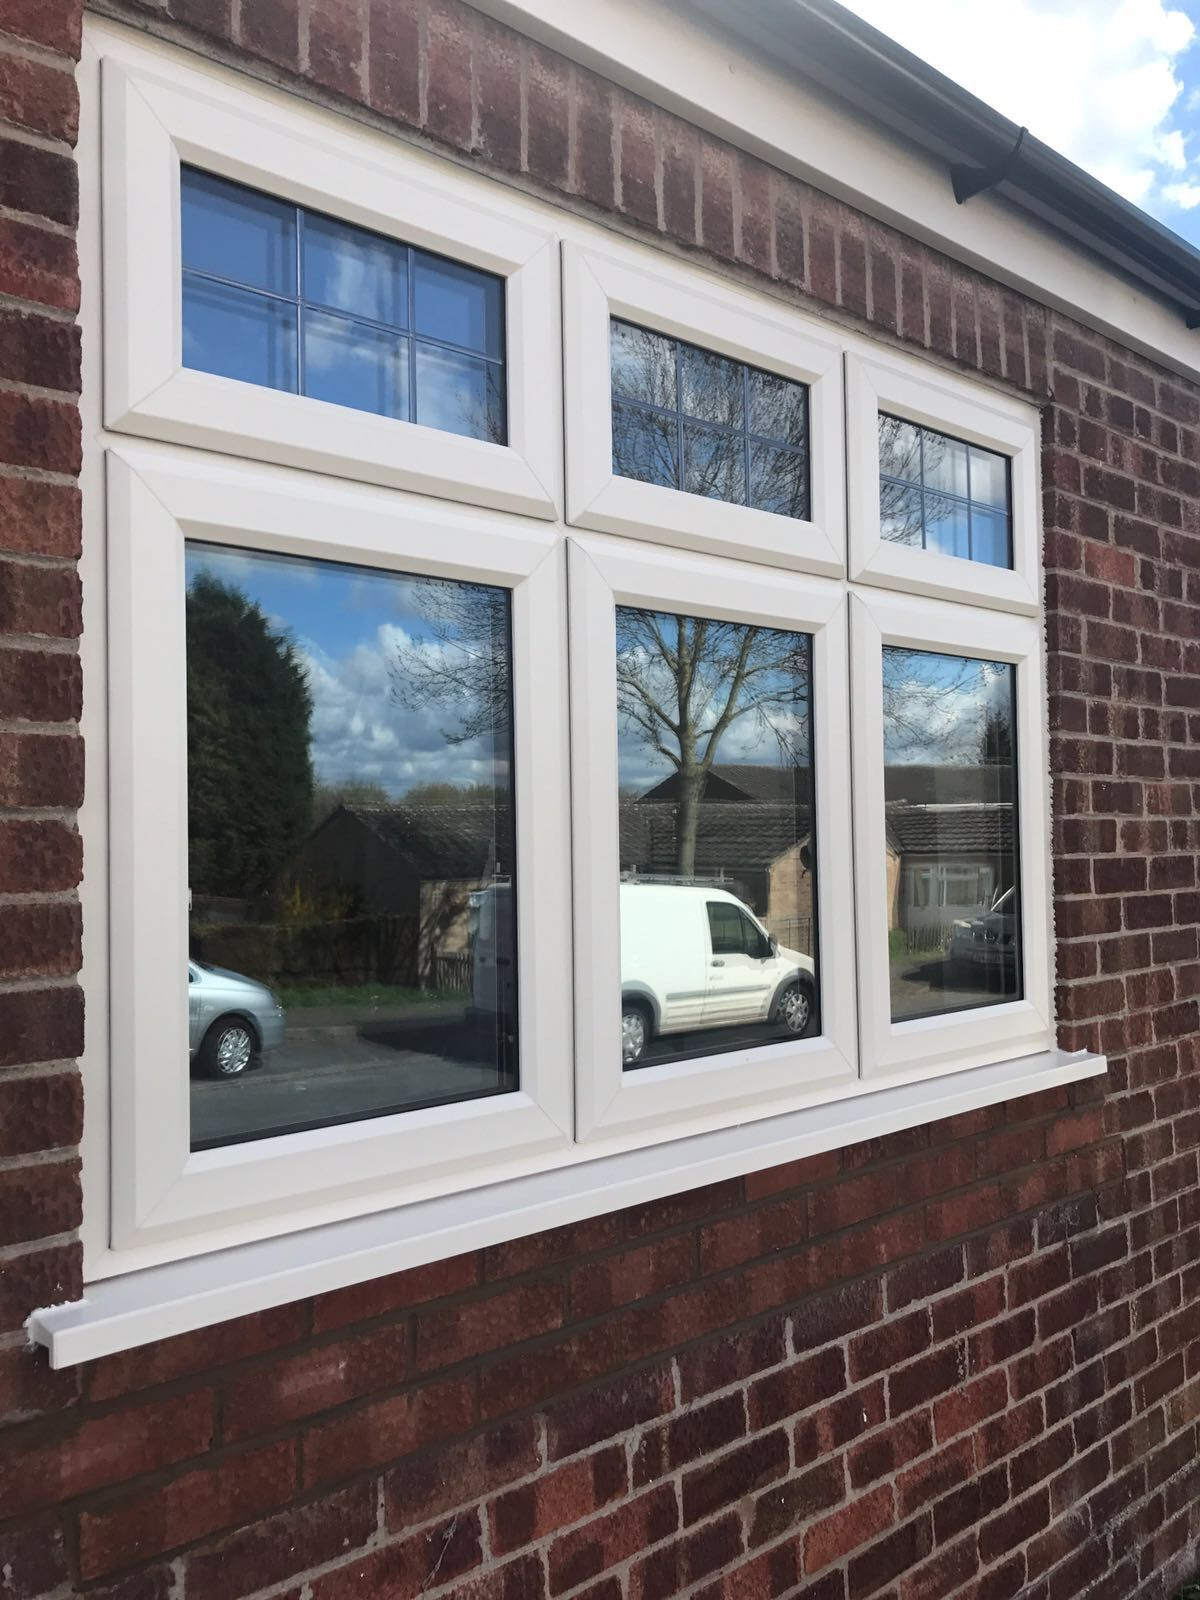 Get Government Grants For Double Glazing And Customized Triple Glazed Window Prices And Replacement Double Glaze Window Prices Double Glazing Windows And Doors